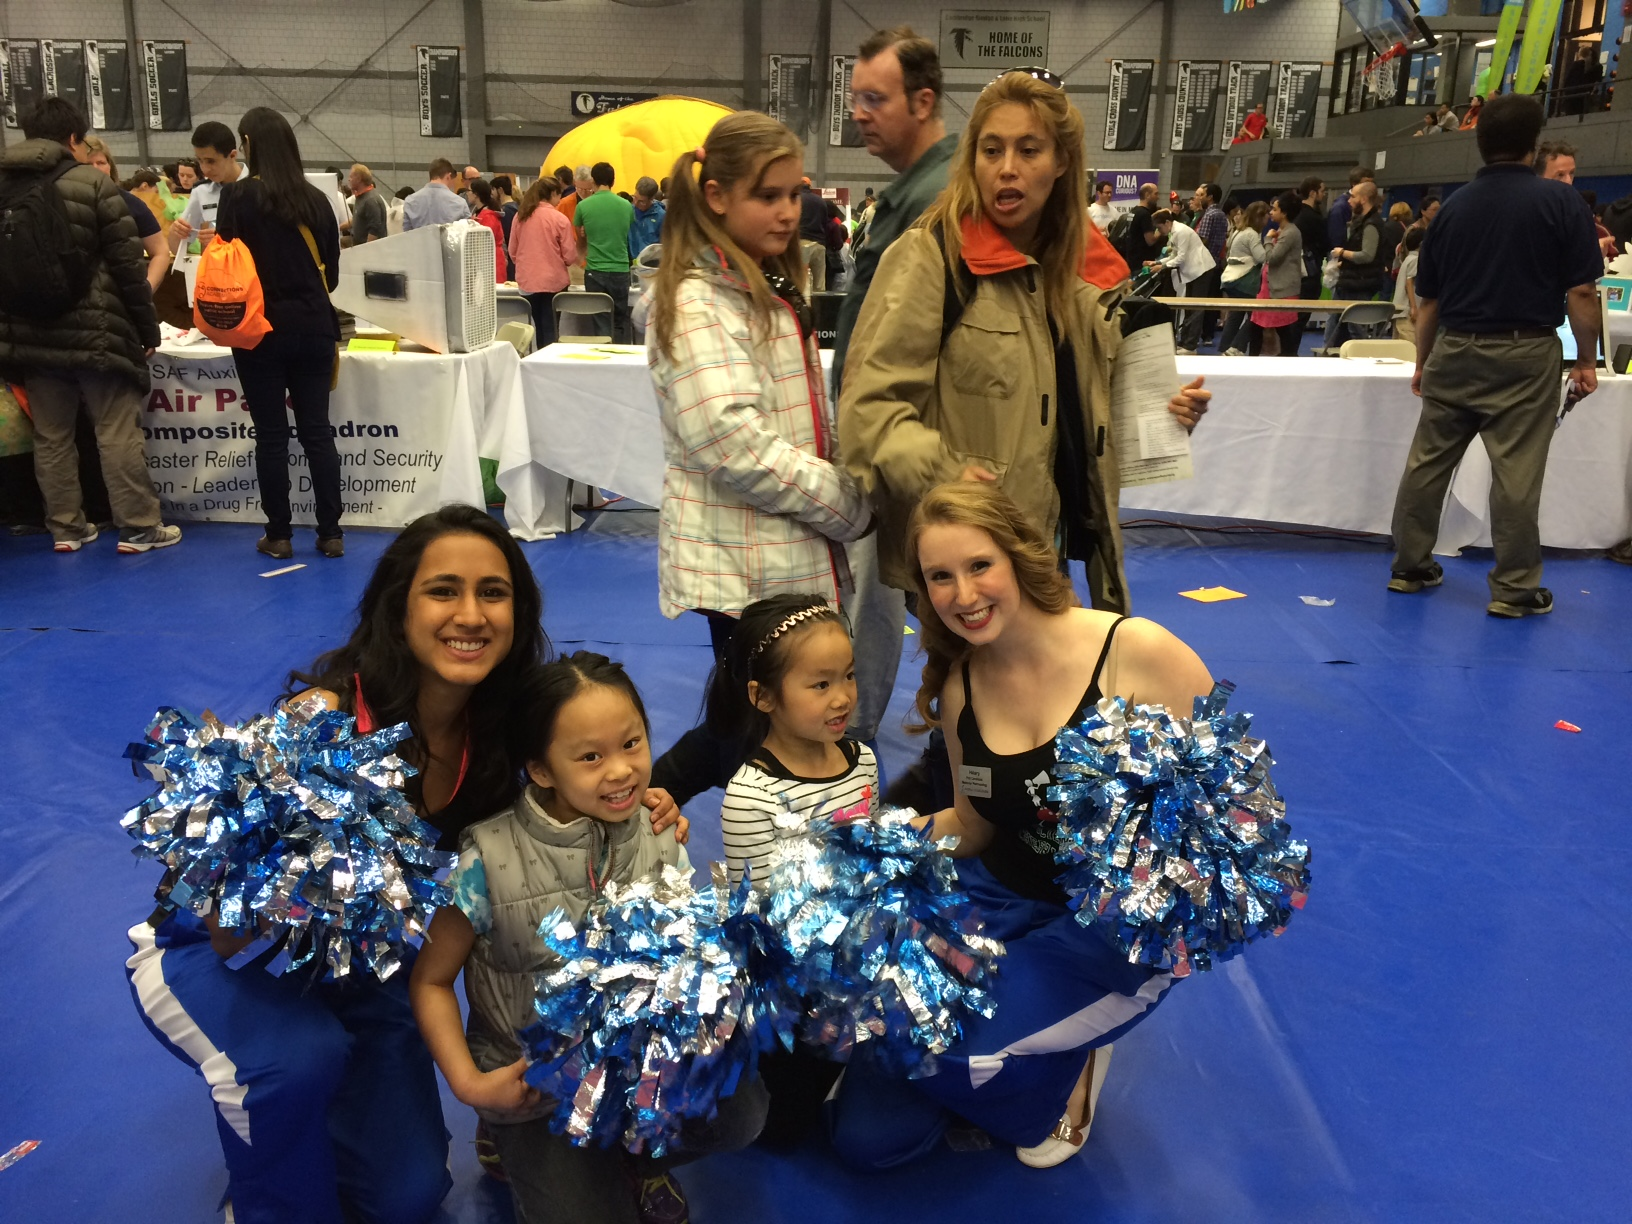 Science Cheerleaders Return to the Cambridge Science Festival!